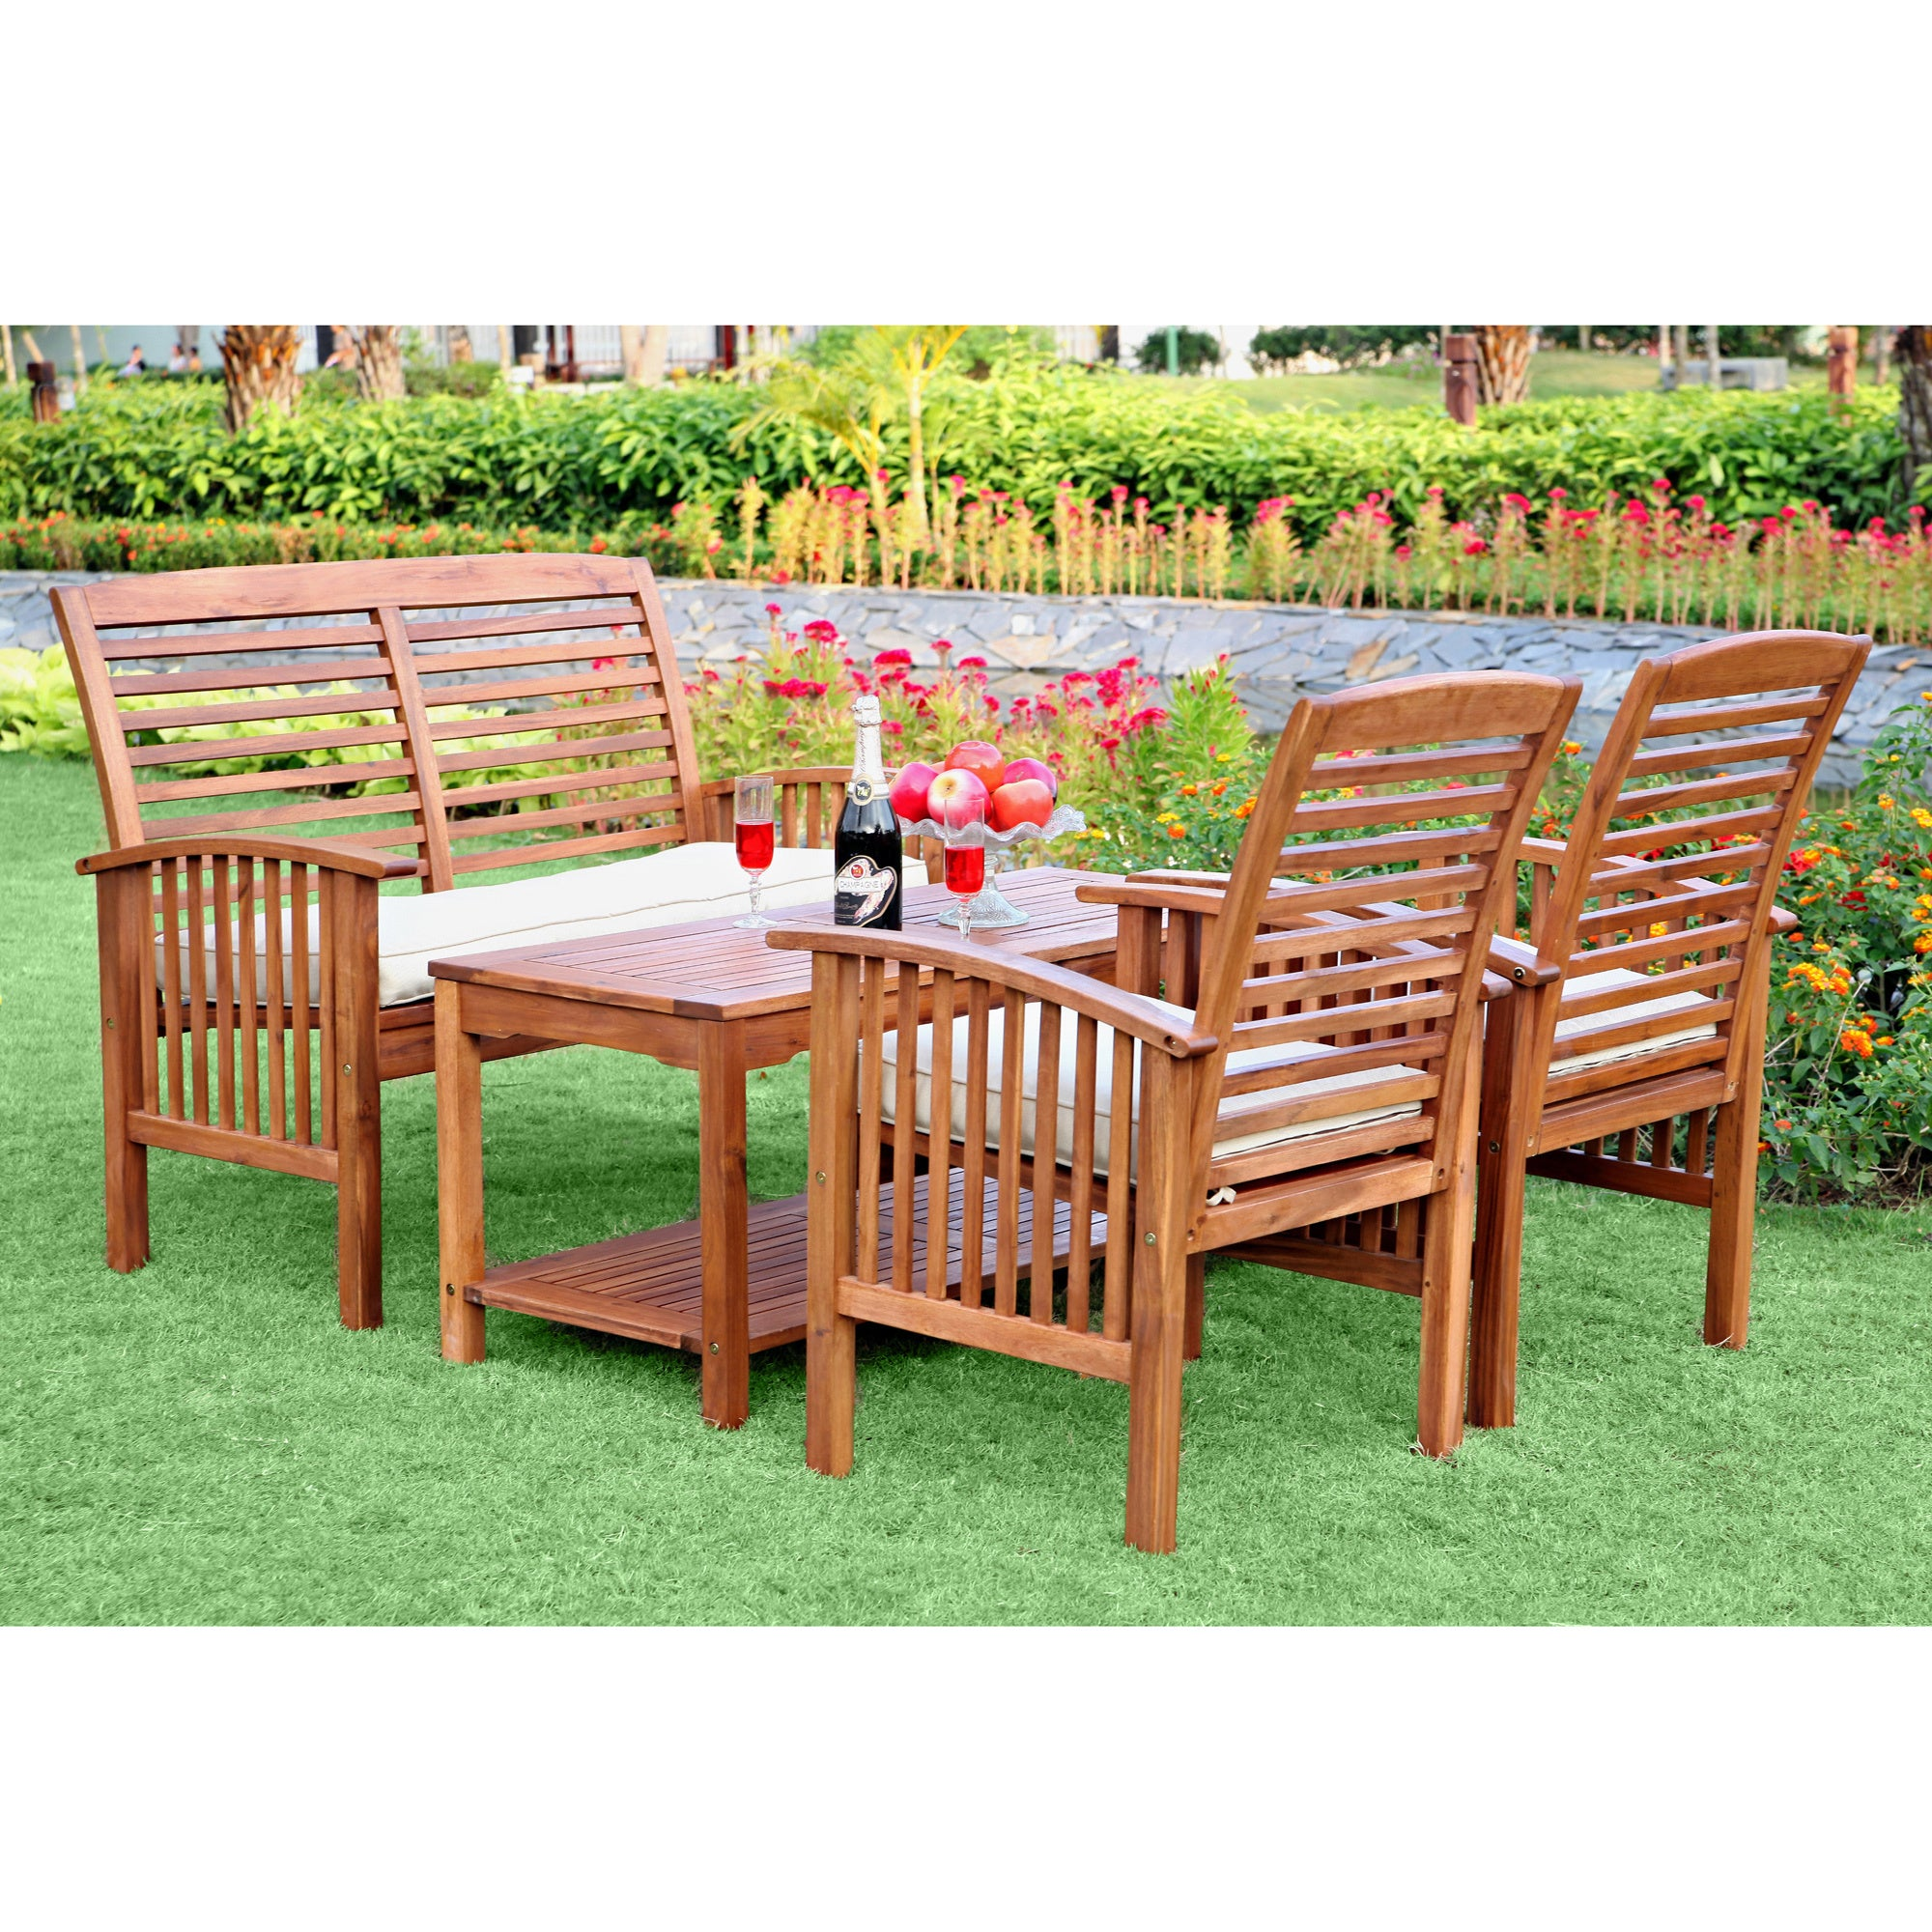 outdoor patio set garden furniture chair gazebo wood dining table set